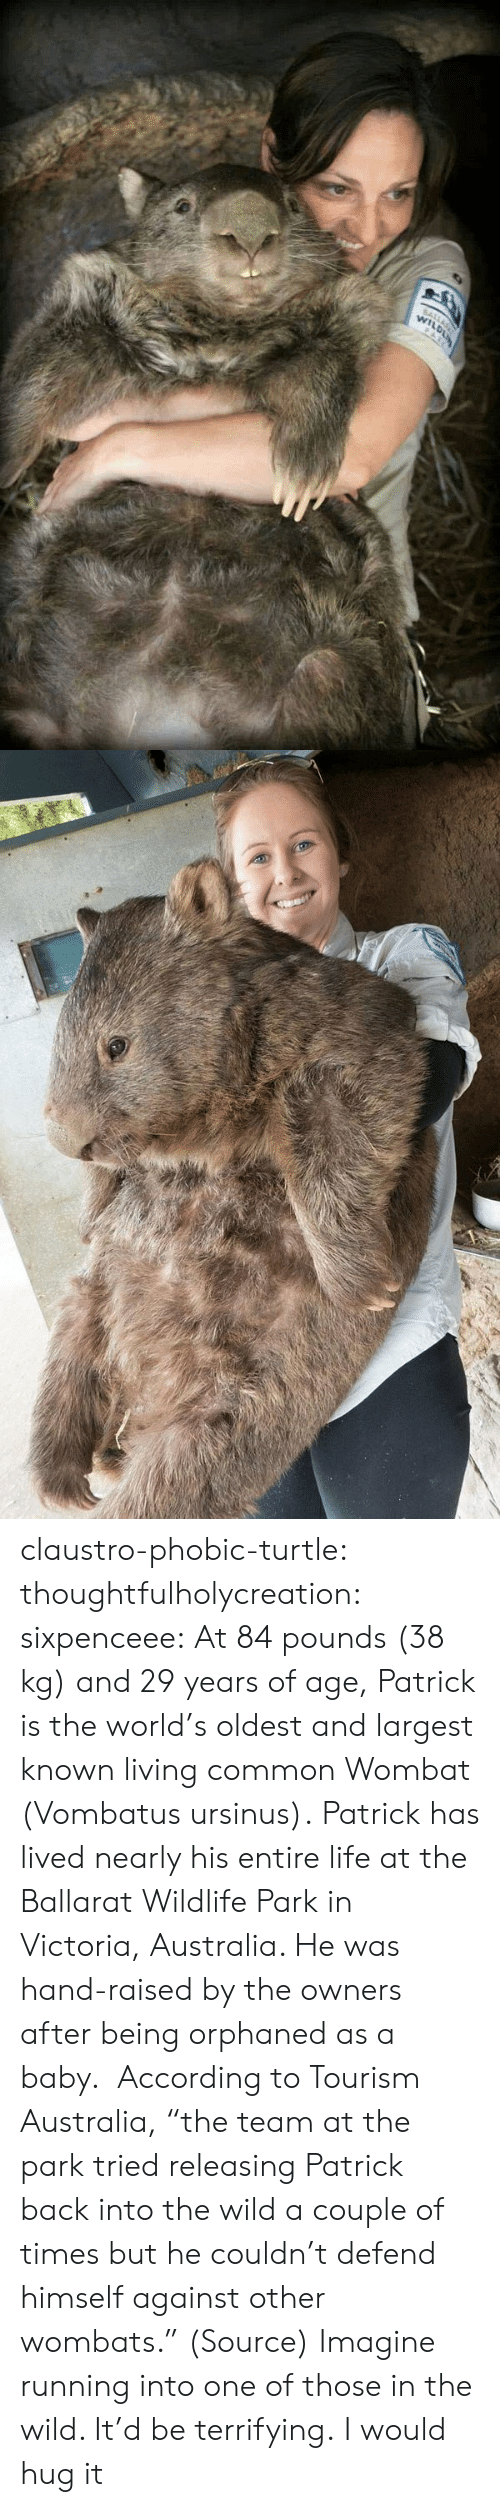 "Of Age: claustro-phobic-turtle:  thoughtfulholycreation:  sixpenceee:   At 84 pounds (38 kg) and 29 years of age, Patrick is the world's oldest and largest known living common Wombat (Vombatus ursinus). Patrick has lived nearly his entire life at the Ballarat Wildlife Park in Victoria, Australia. He was hand-raised by the owners after being orphaned as a baby.  According to Tourism Australia, ""the team at the park tried releasing Patrick back into the wild a couple of times but he couldn't defend himself against other wombats."" (Source)   Imagine running into one of those in the wild. It'd be terrifying.   I would hug it"